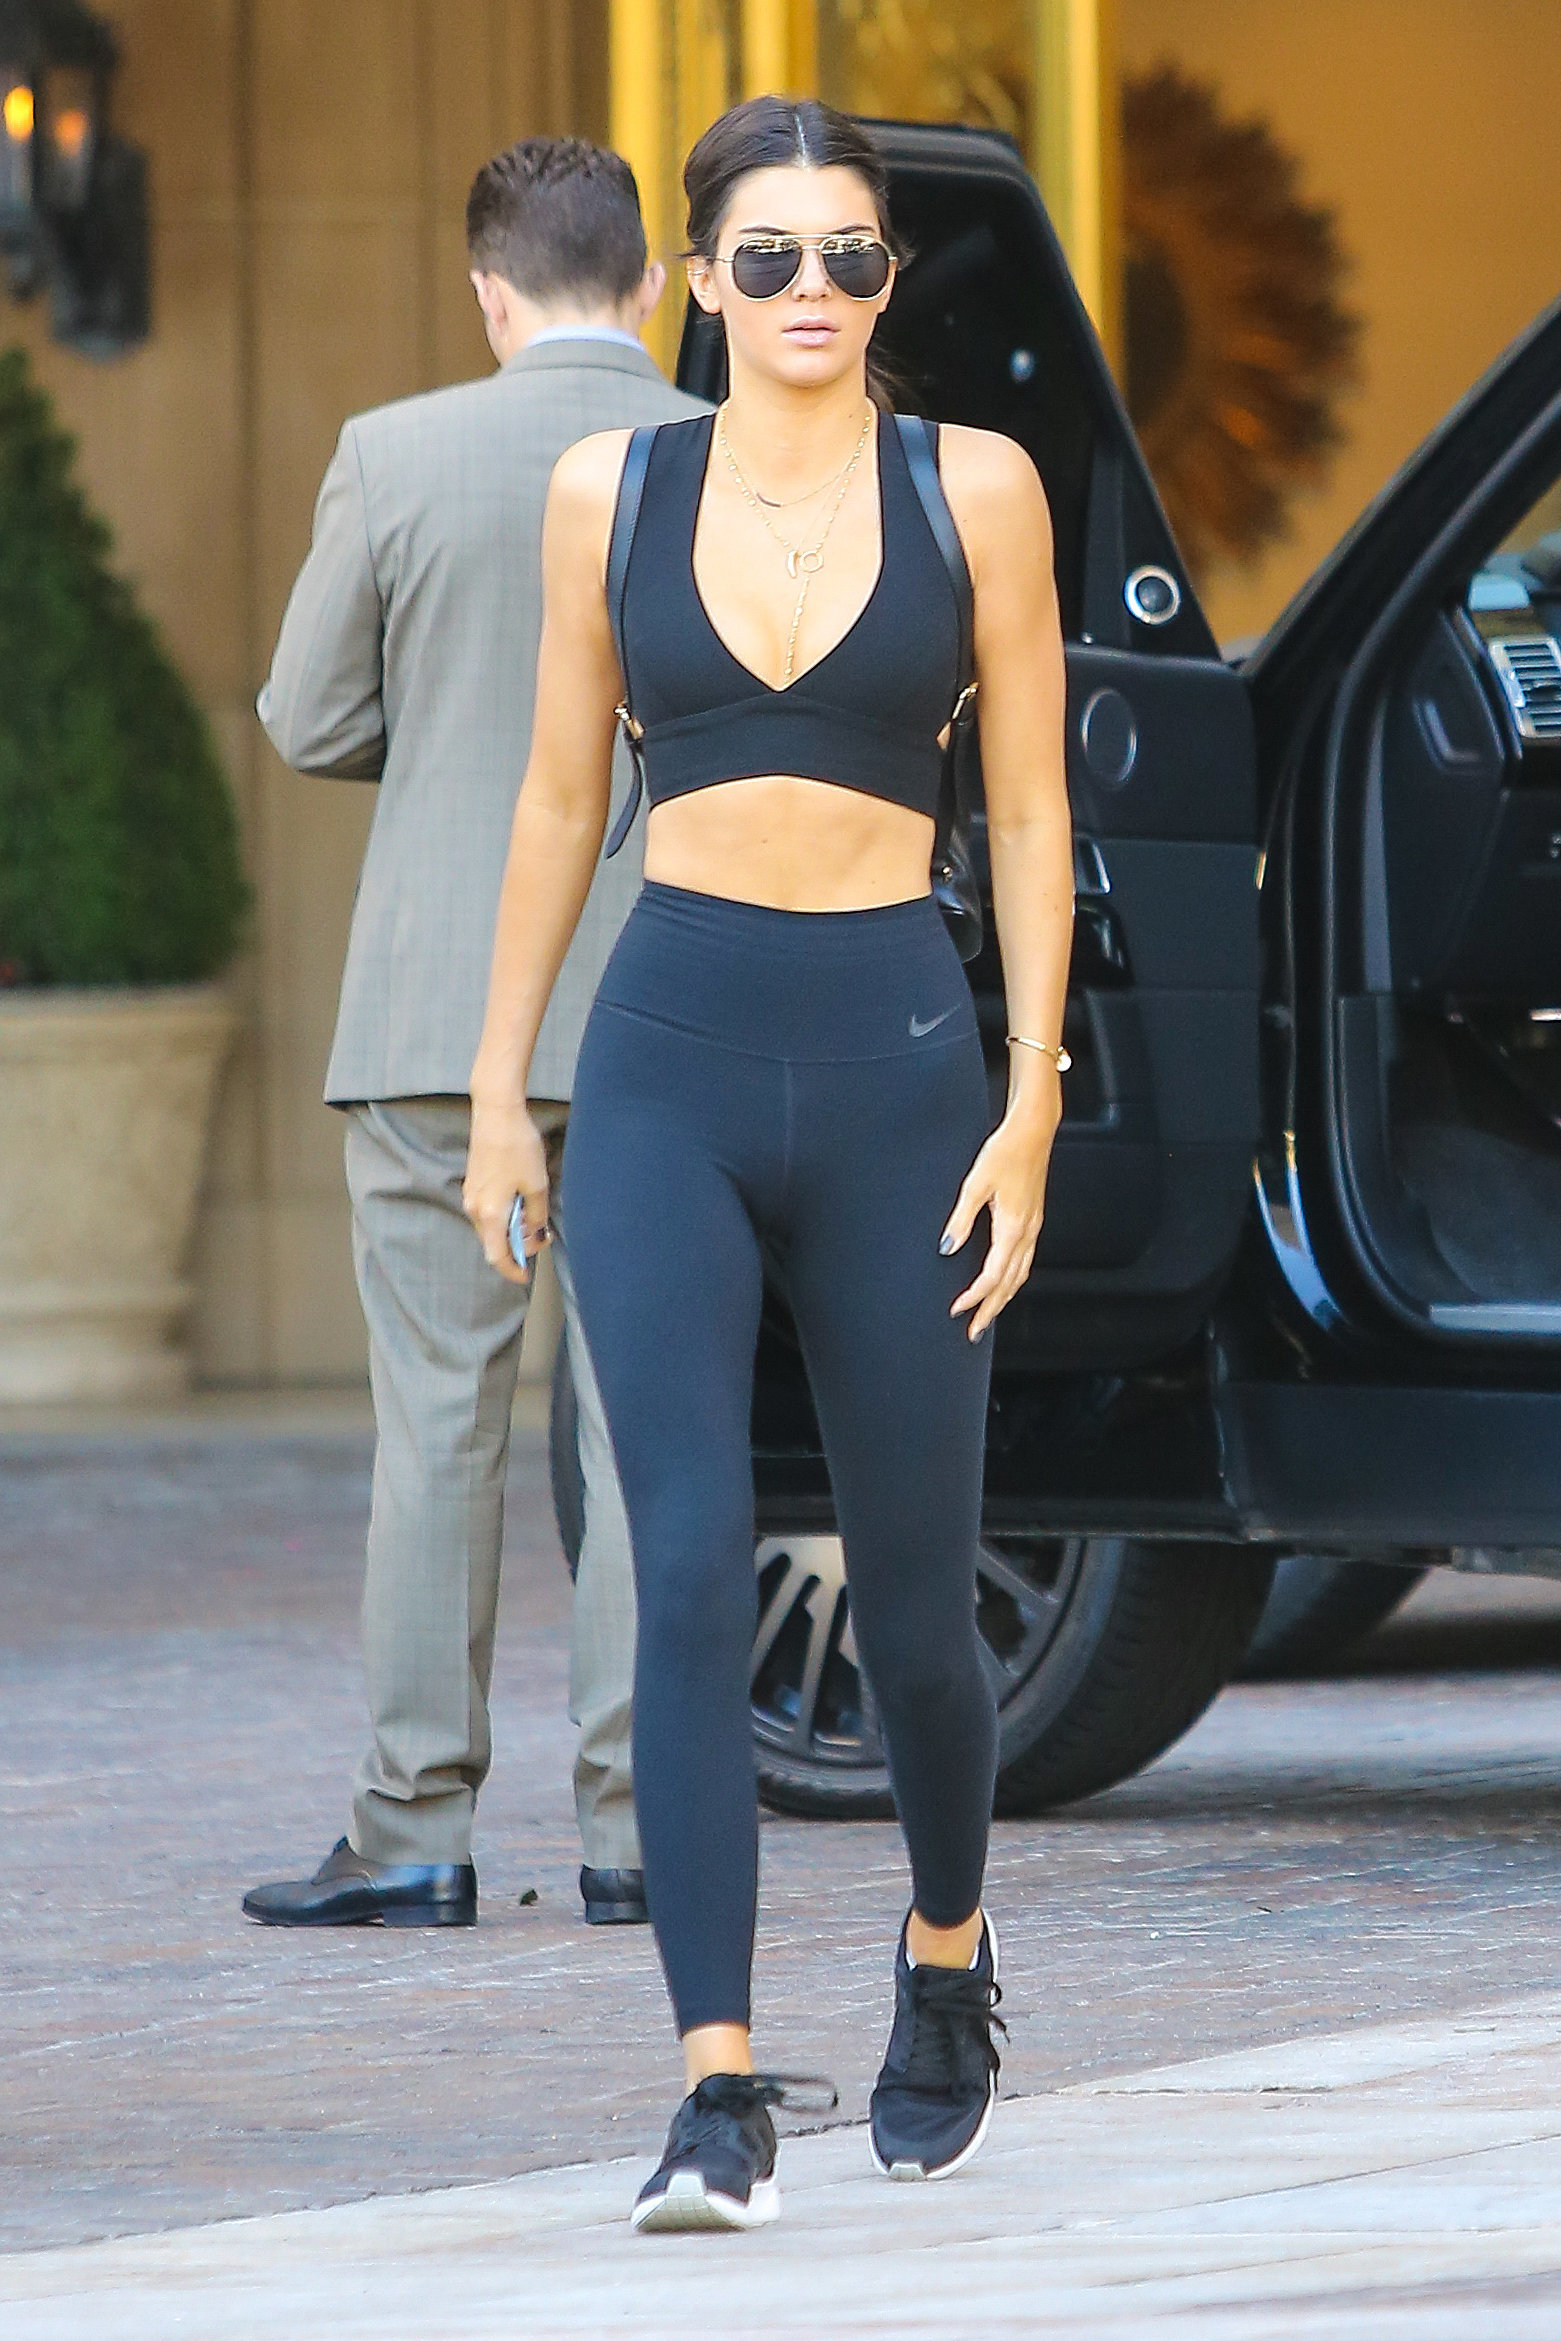 Kendall Jenner Giving Us Serious Ab Envy In Her All Black